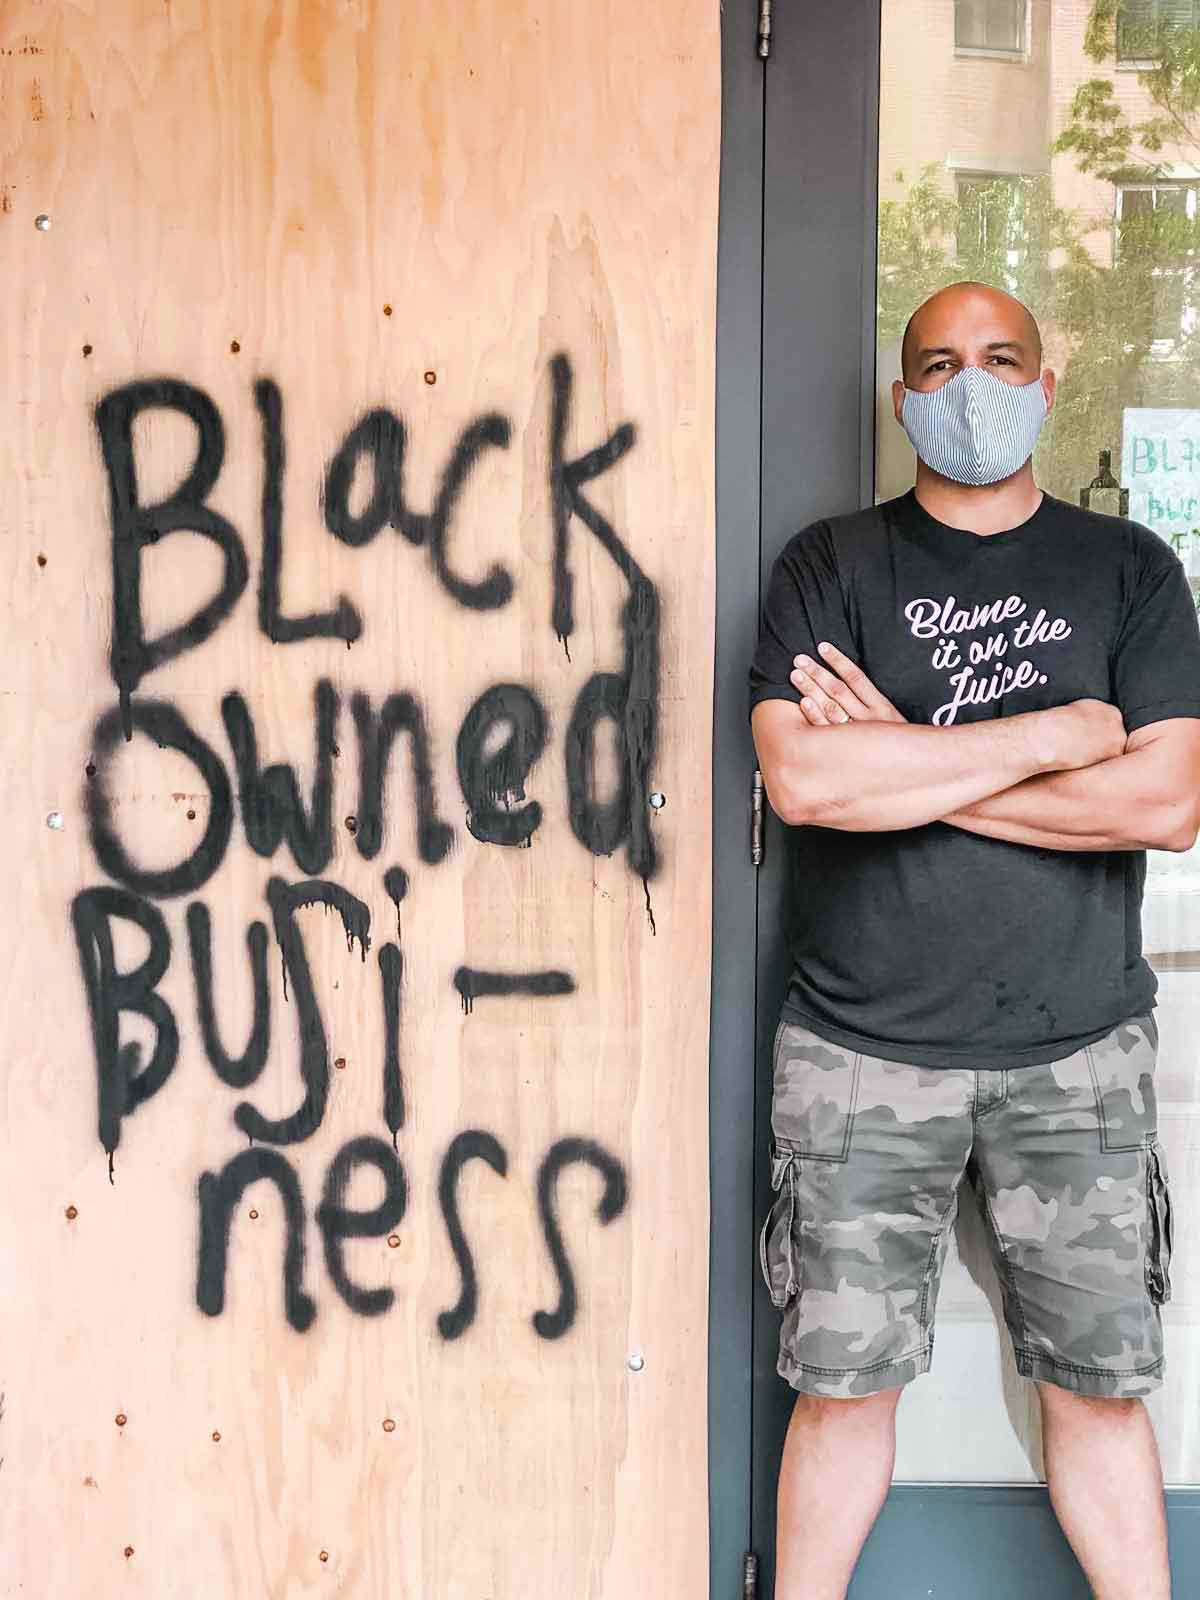 TJ Douglas standing beside a piece of plywood spray-painted with 'Black Owned Business'.